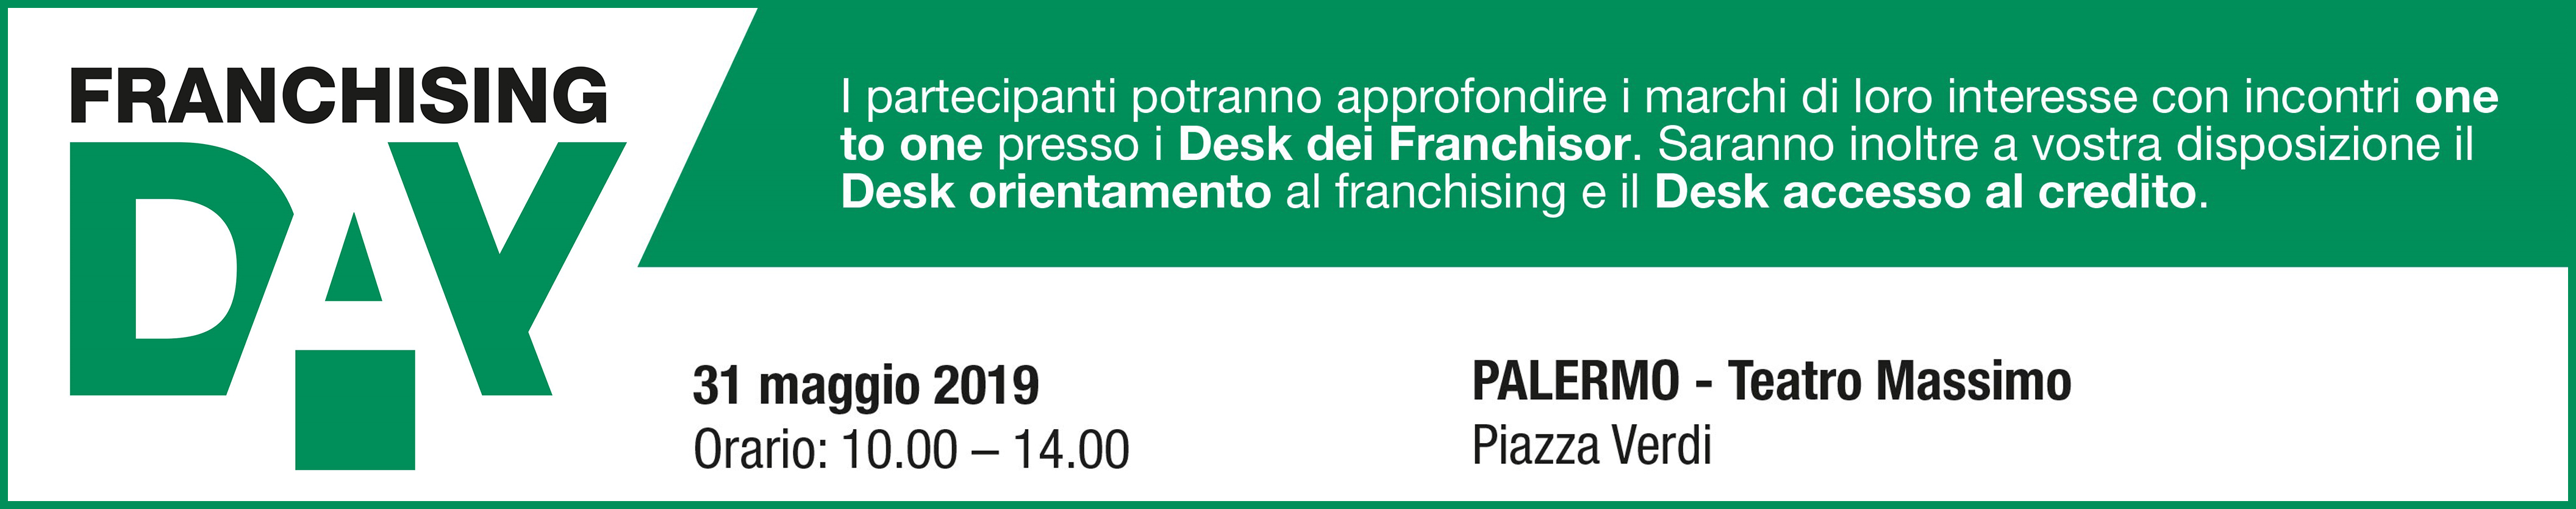 Franchising Day di Palermo